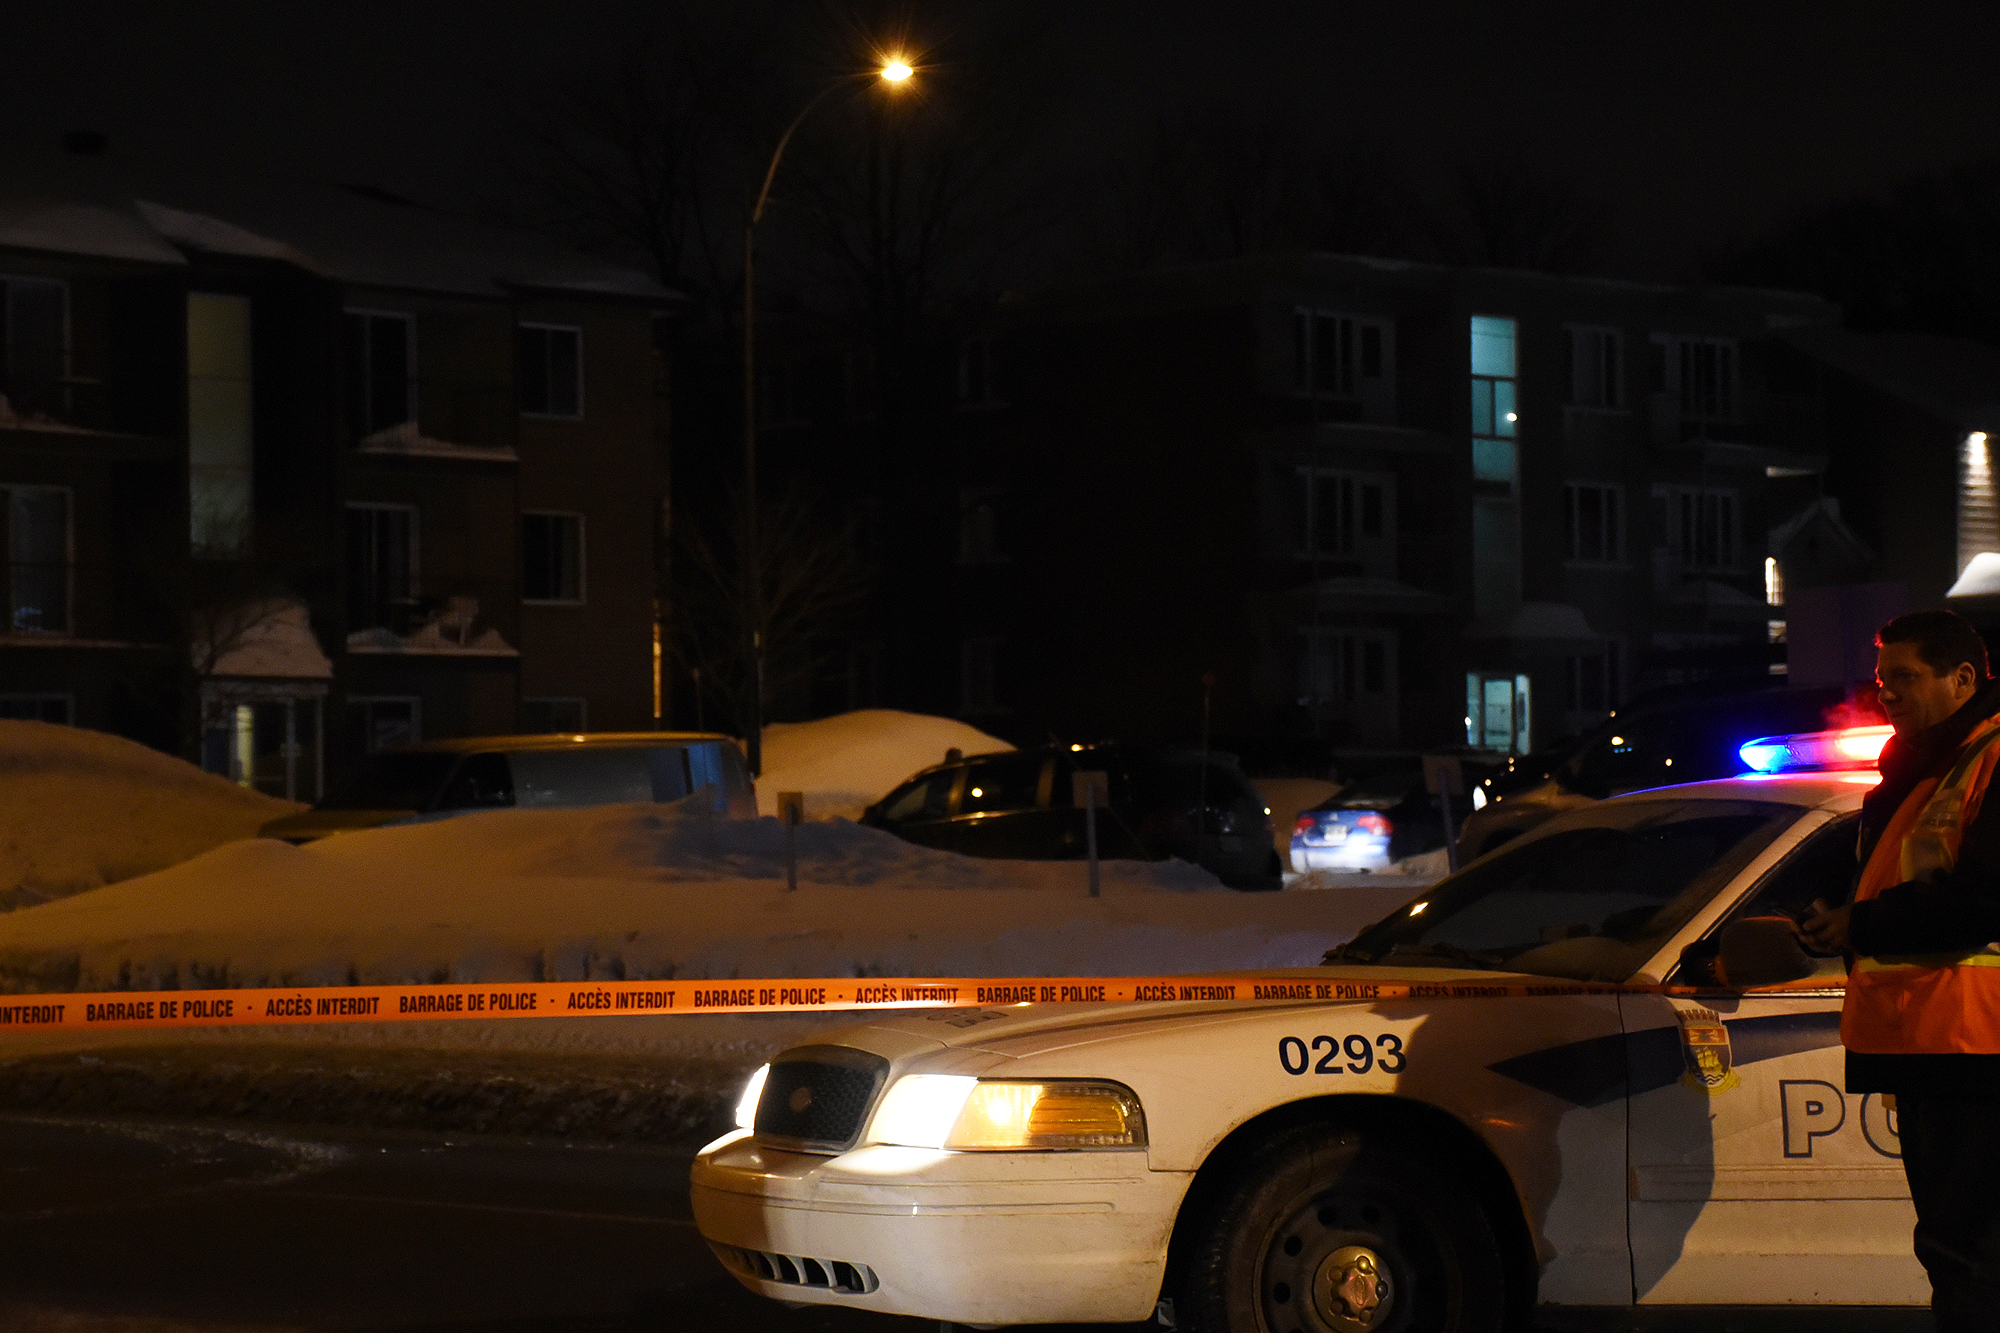 At around 2:30am Quebec City Police Service and Surete du Quebec start to investigate the apartment of one of the presumed suspects in the Mosque shooting that killed at least six people on January 30, 2017. On Rue Pouliot, only 30 seconds by car from the Mosque, the police blocked the street and entered an apartment in Montreal, Quebec, Canada.